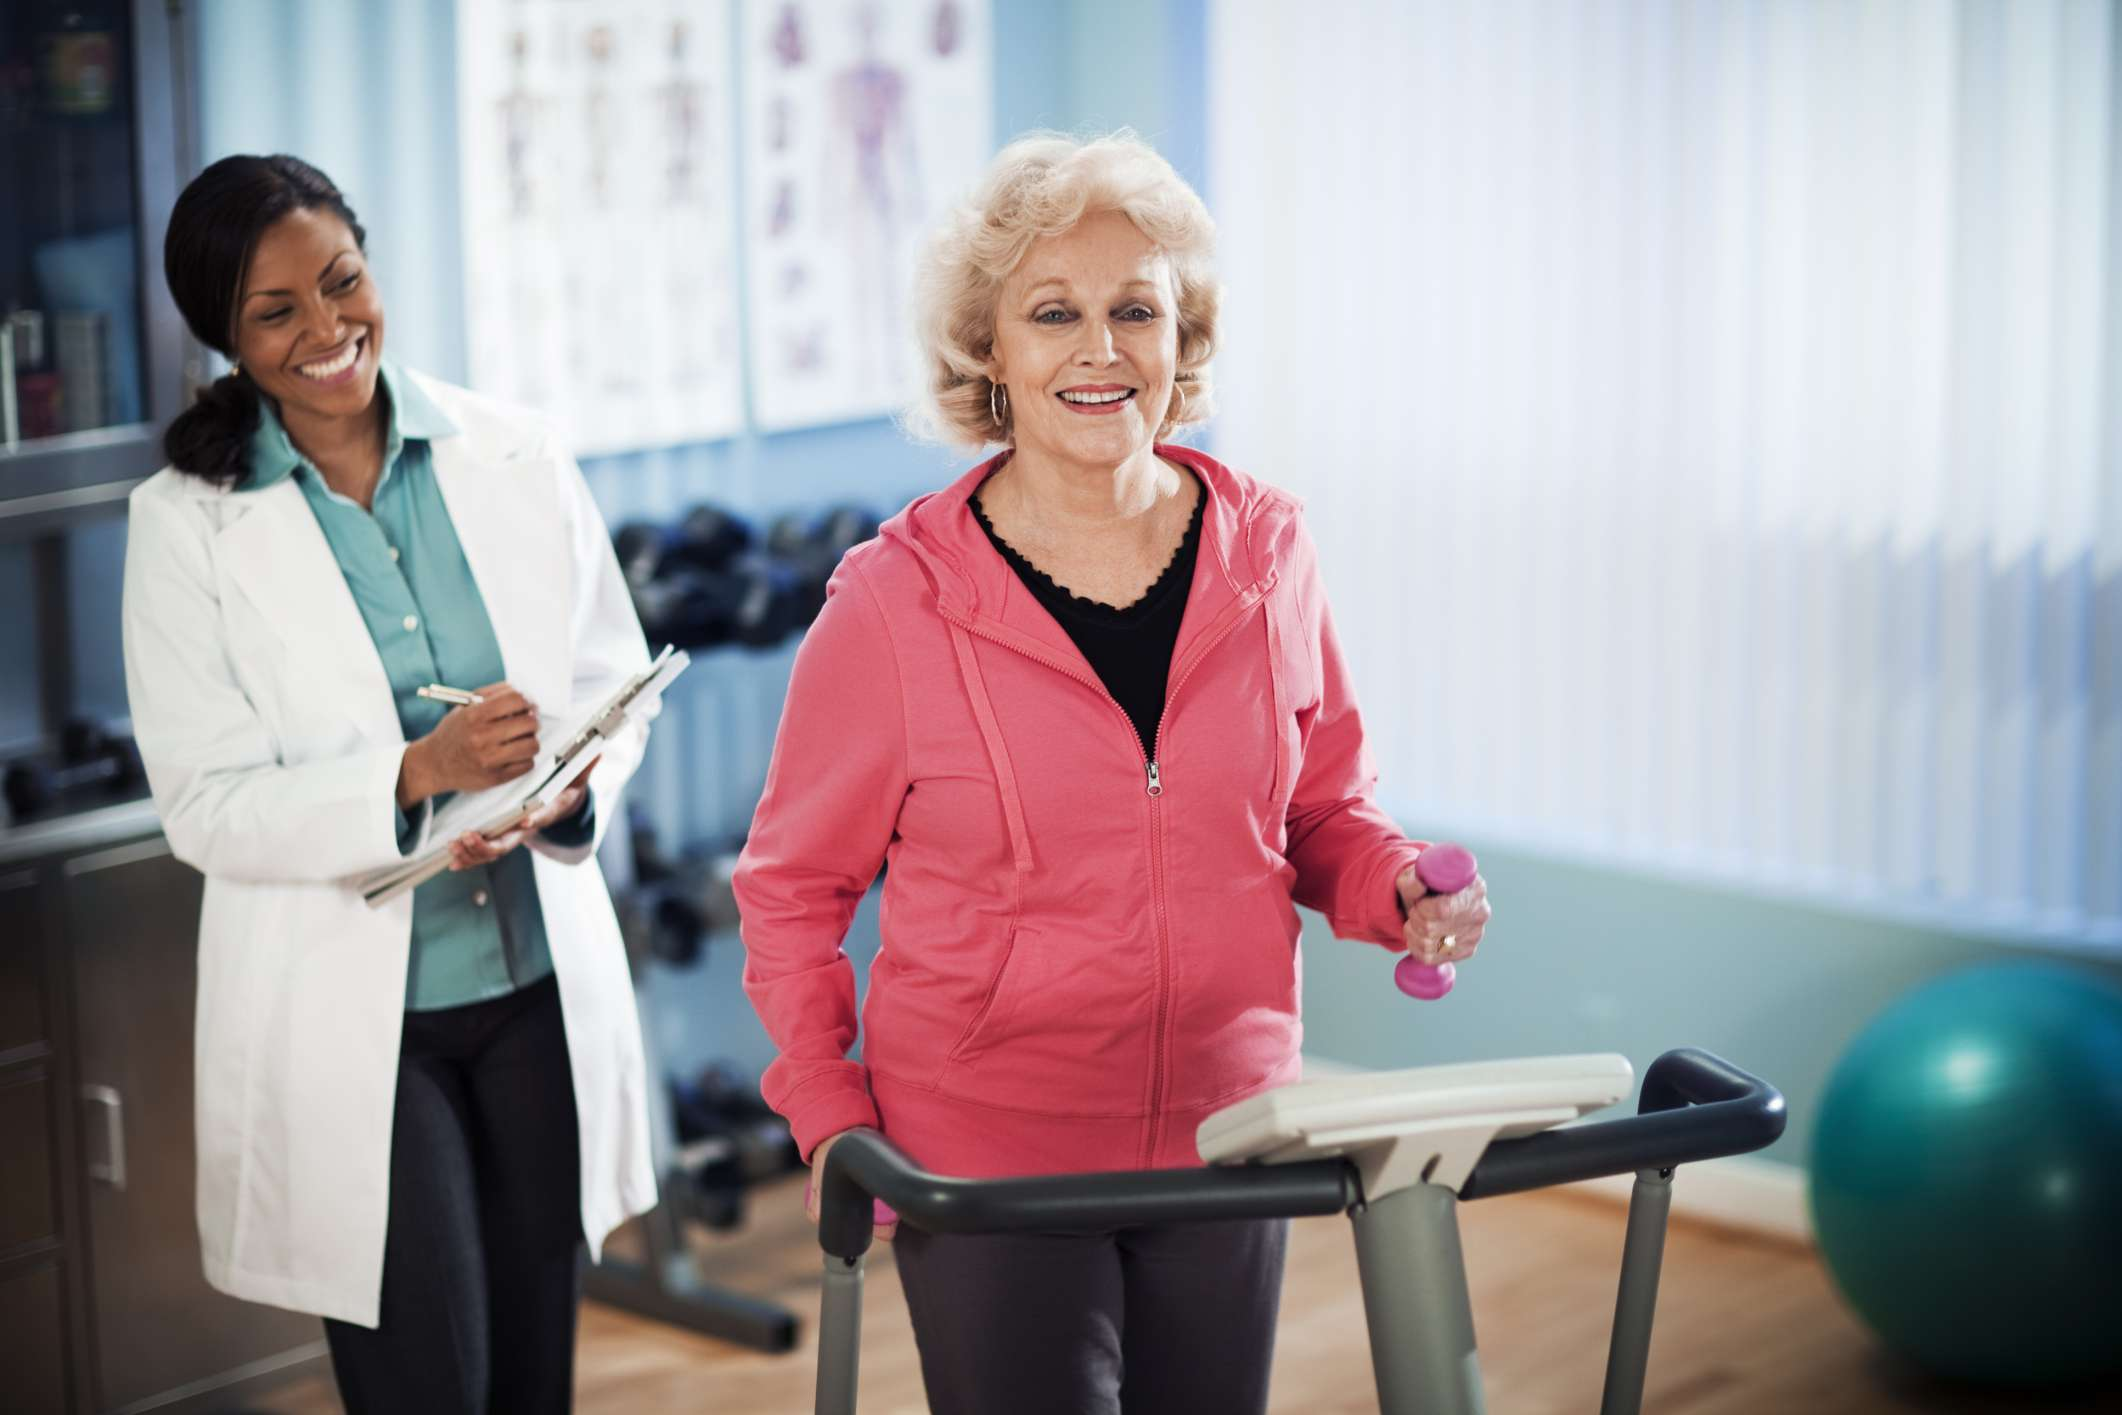 Older woman walking on treadmill with doctor next to her